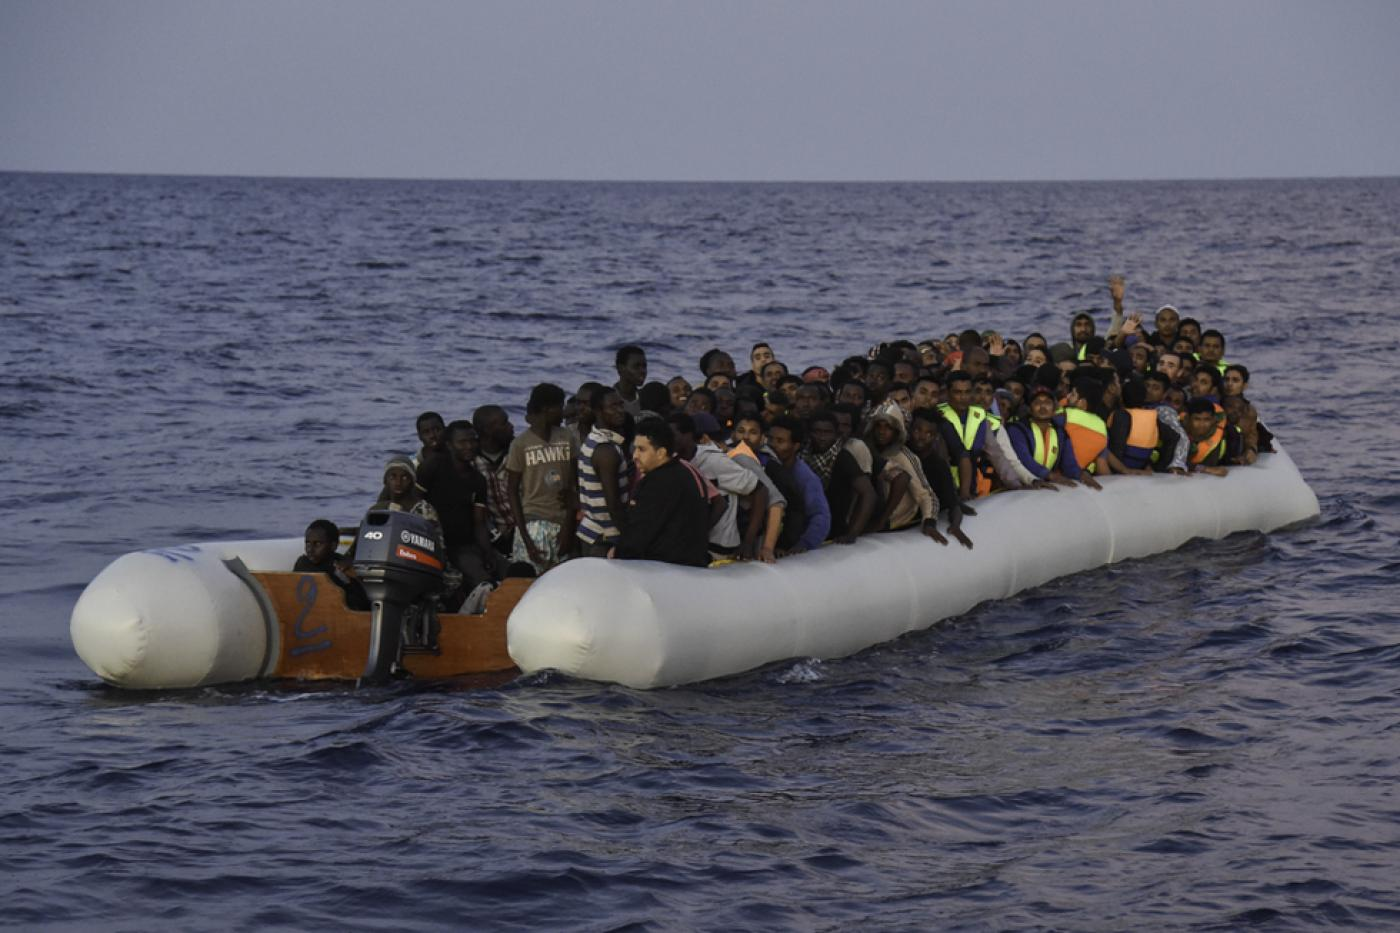 High-quality refugee boats' for sale on Chinese website, despite EU  criticism | Middle East Eye